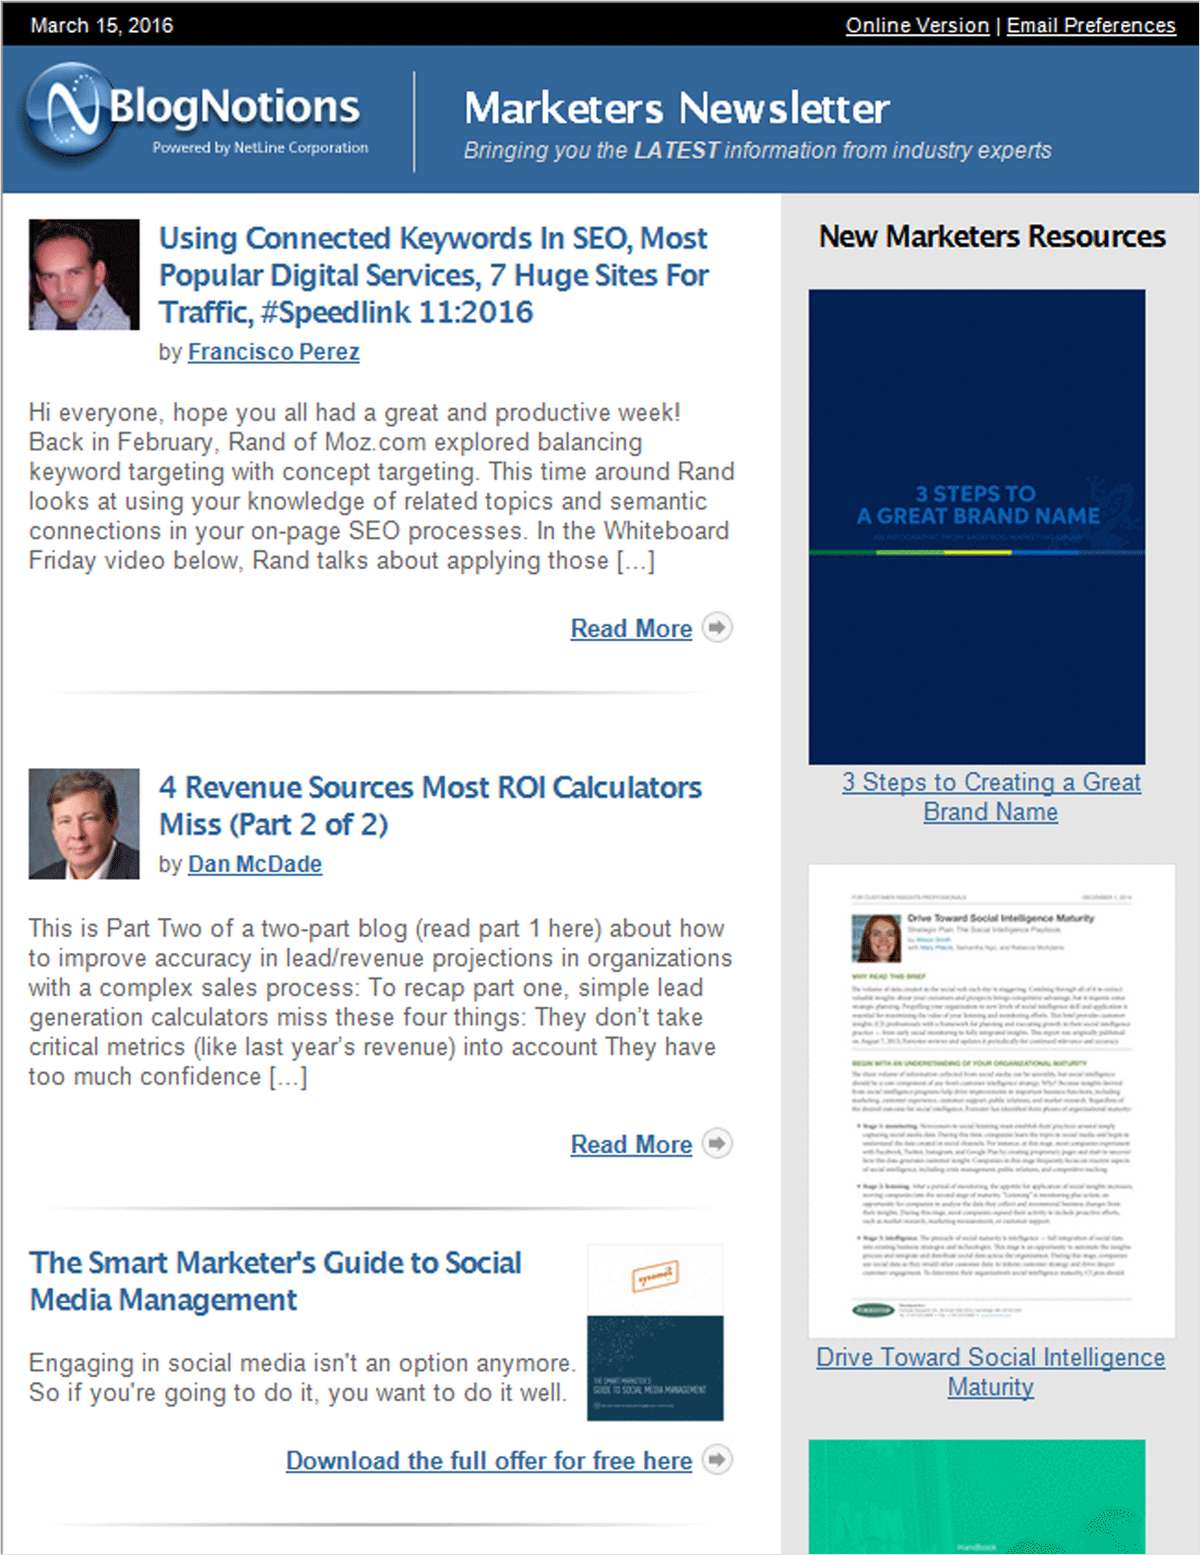 BlogNotions Marketers Newsletter: Monthly eNewsletter Featuring Blogs from Industry Experts